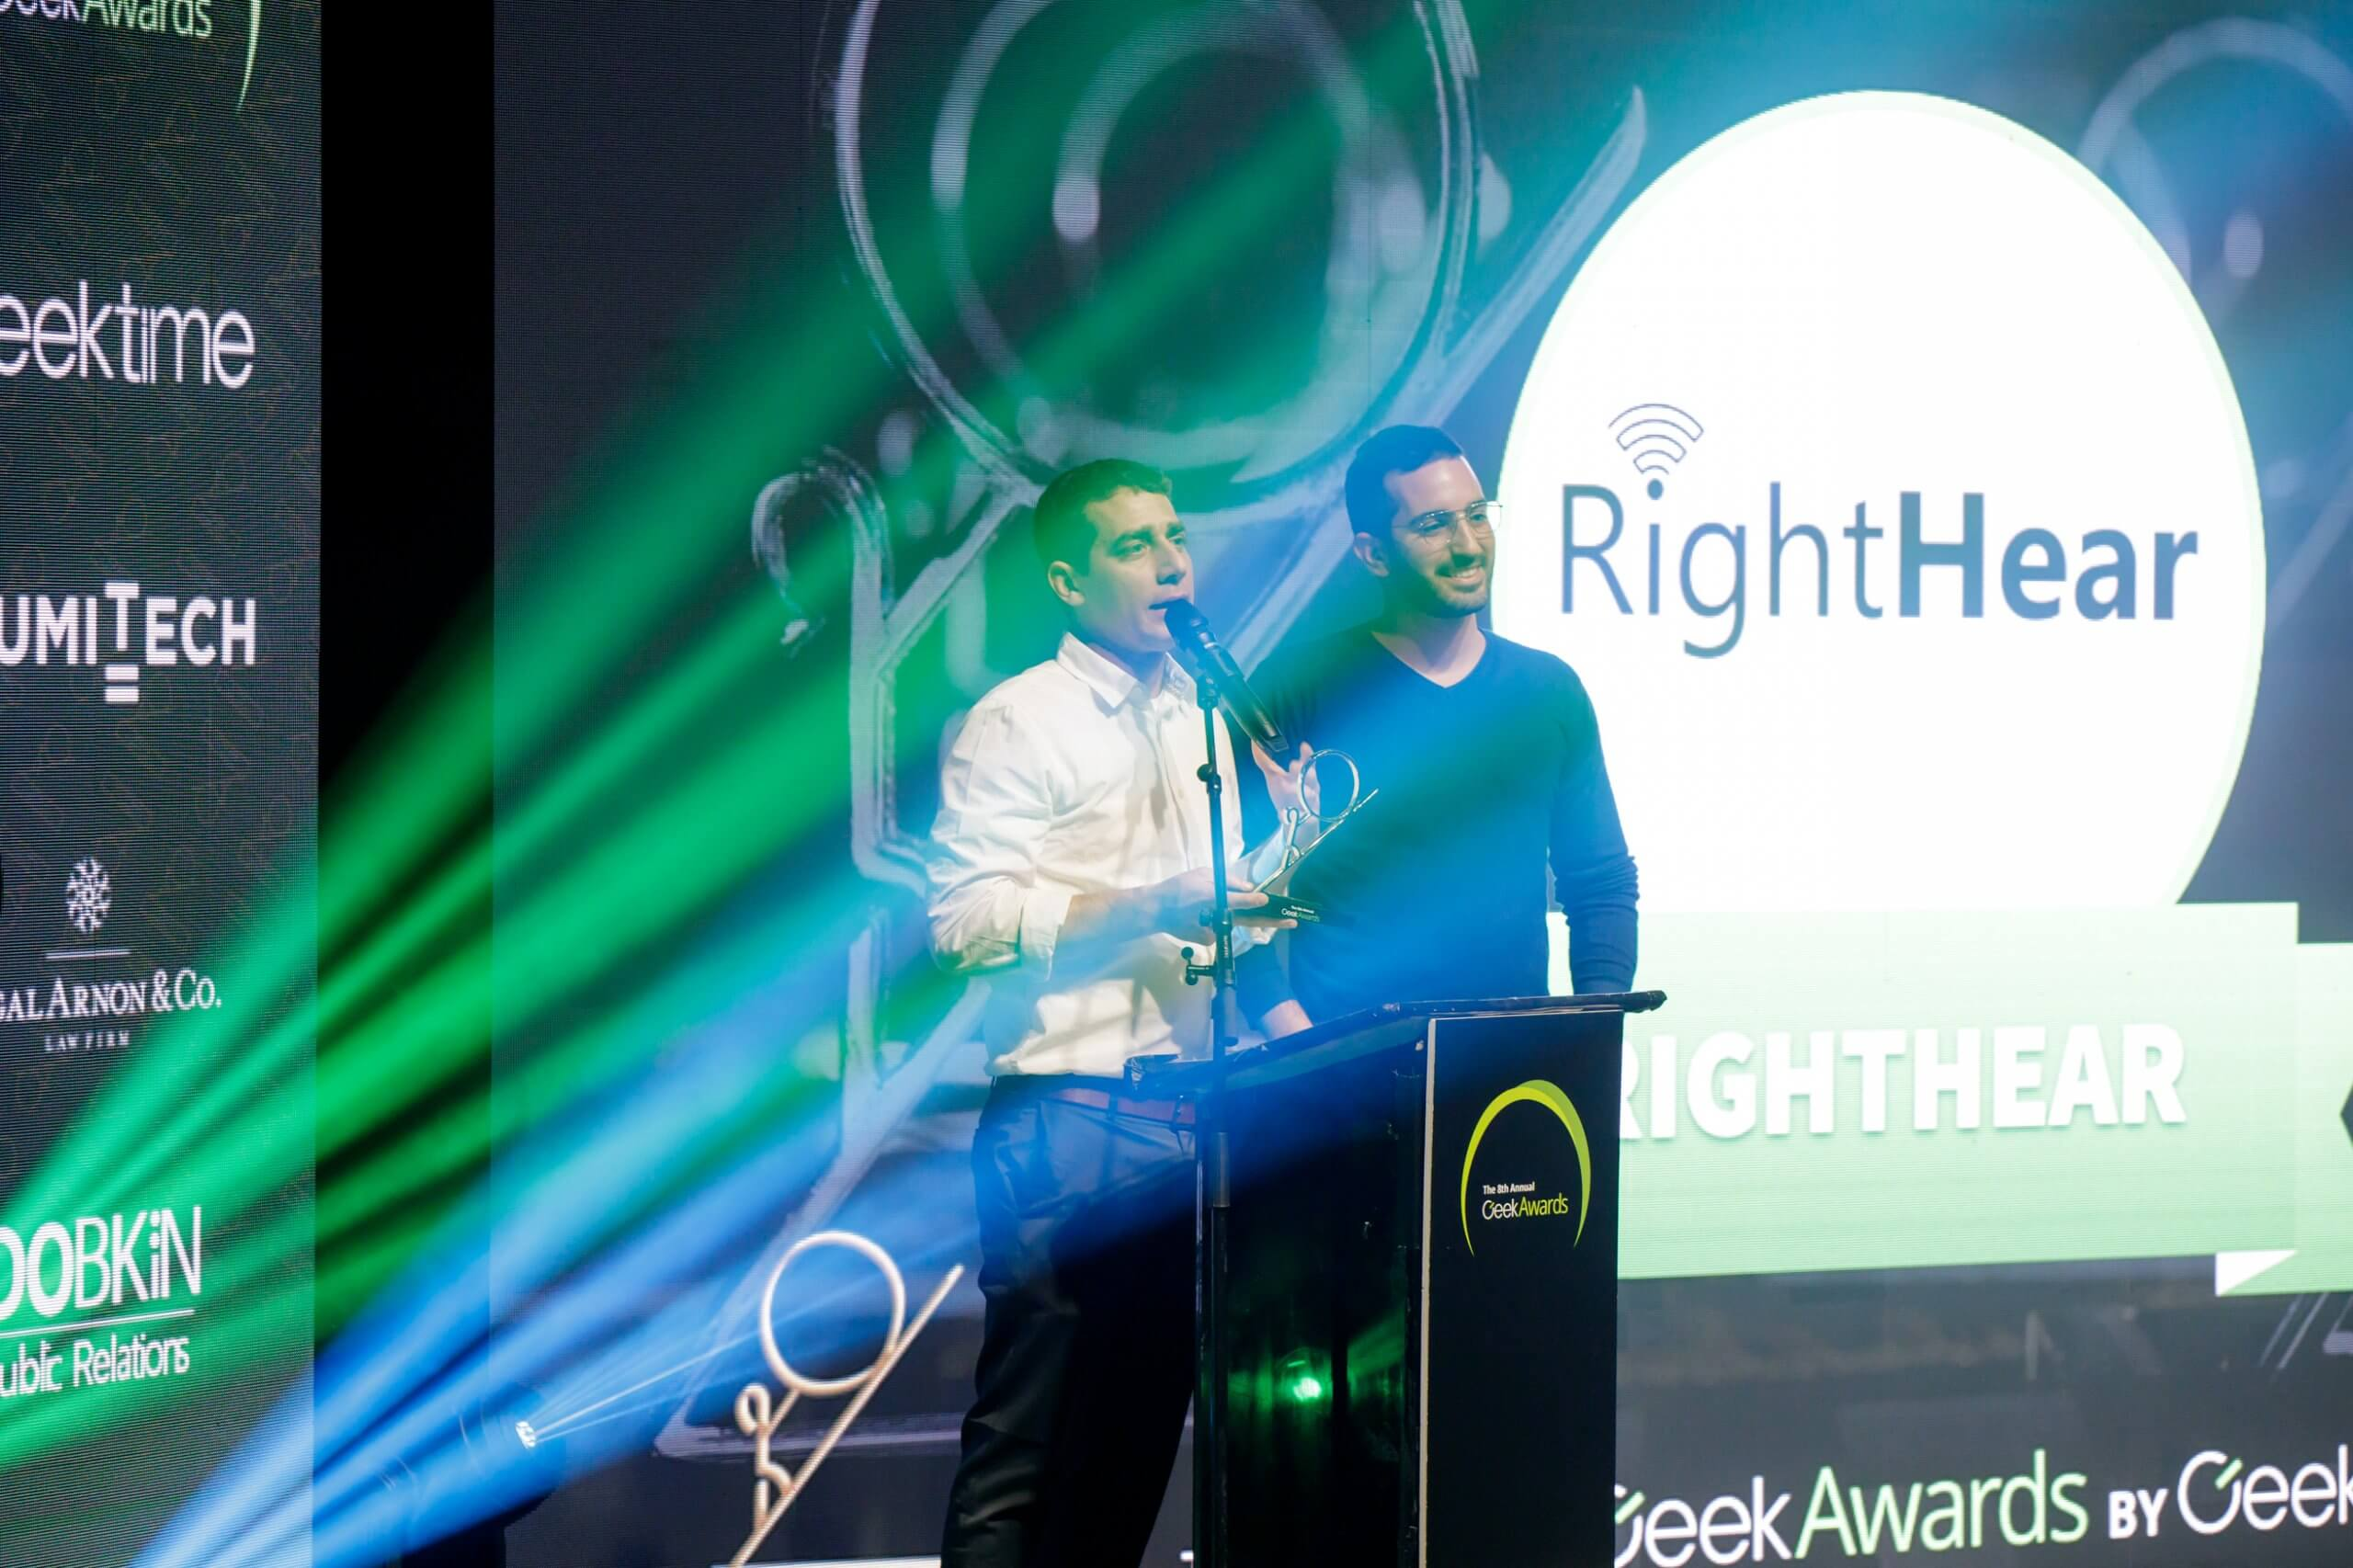 RightHear founder on stage, receiving an award